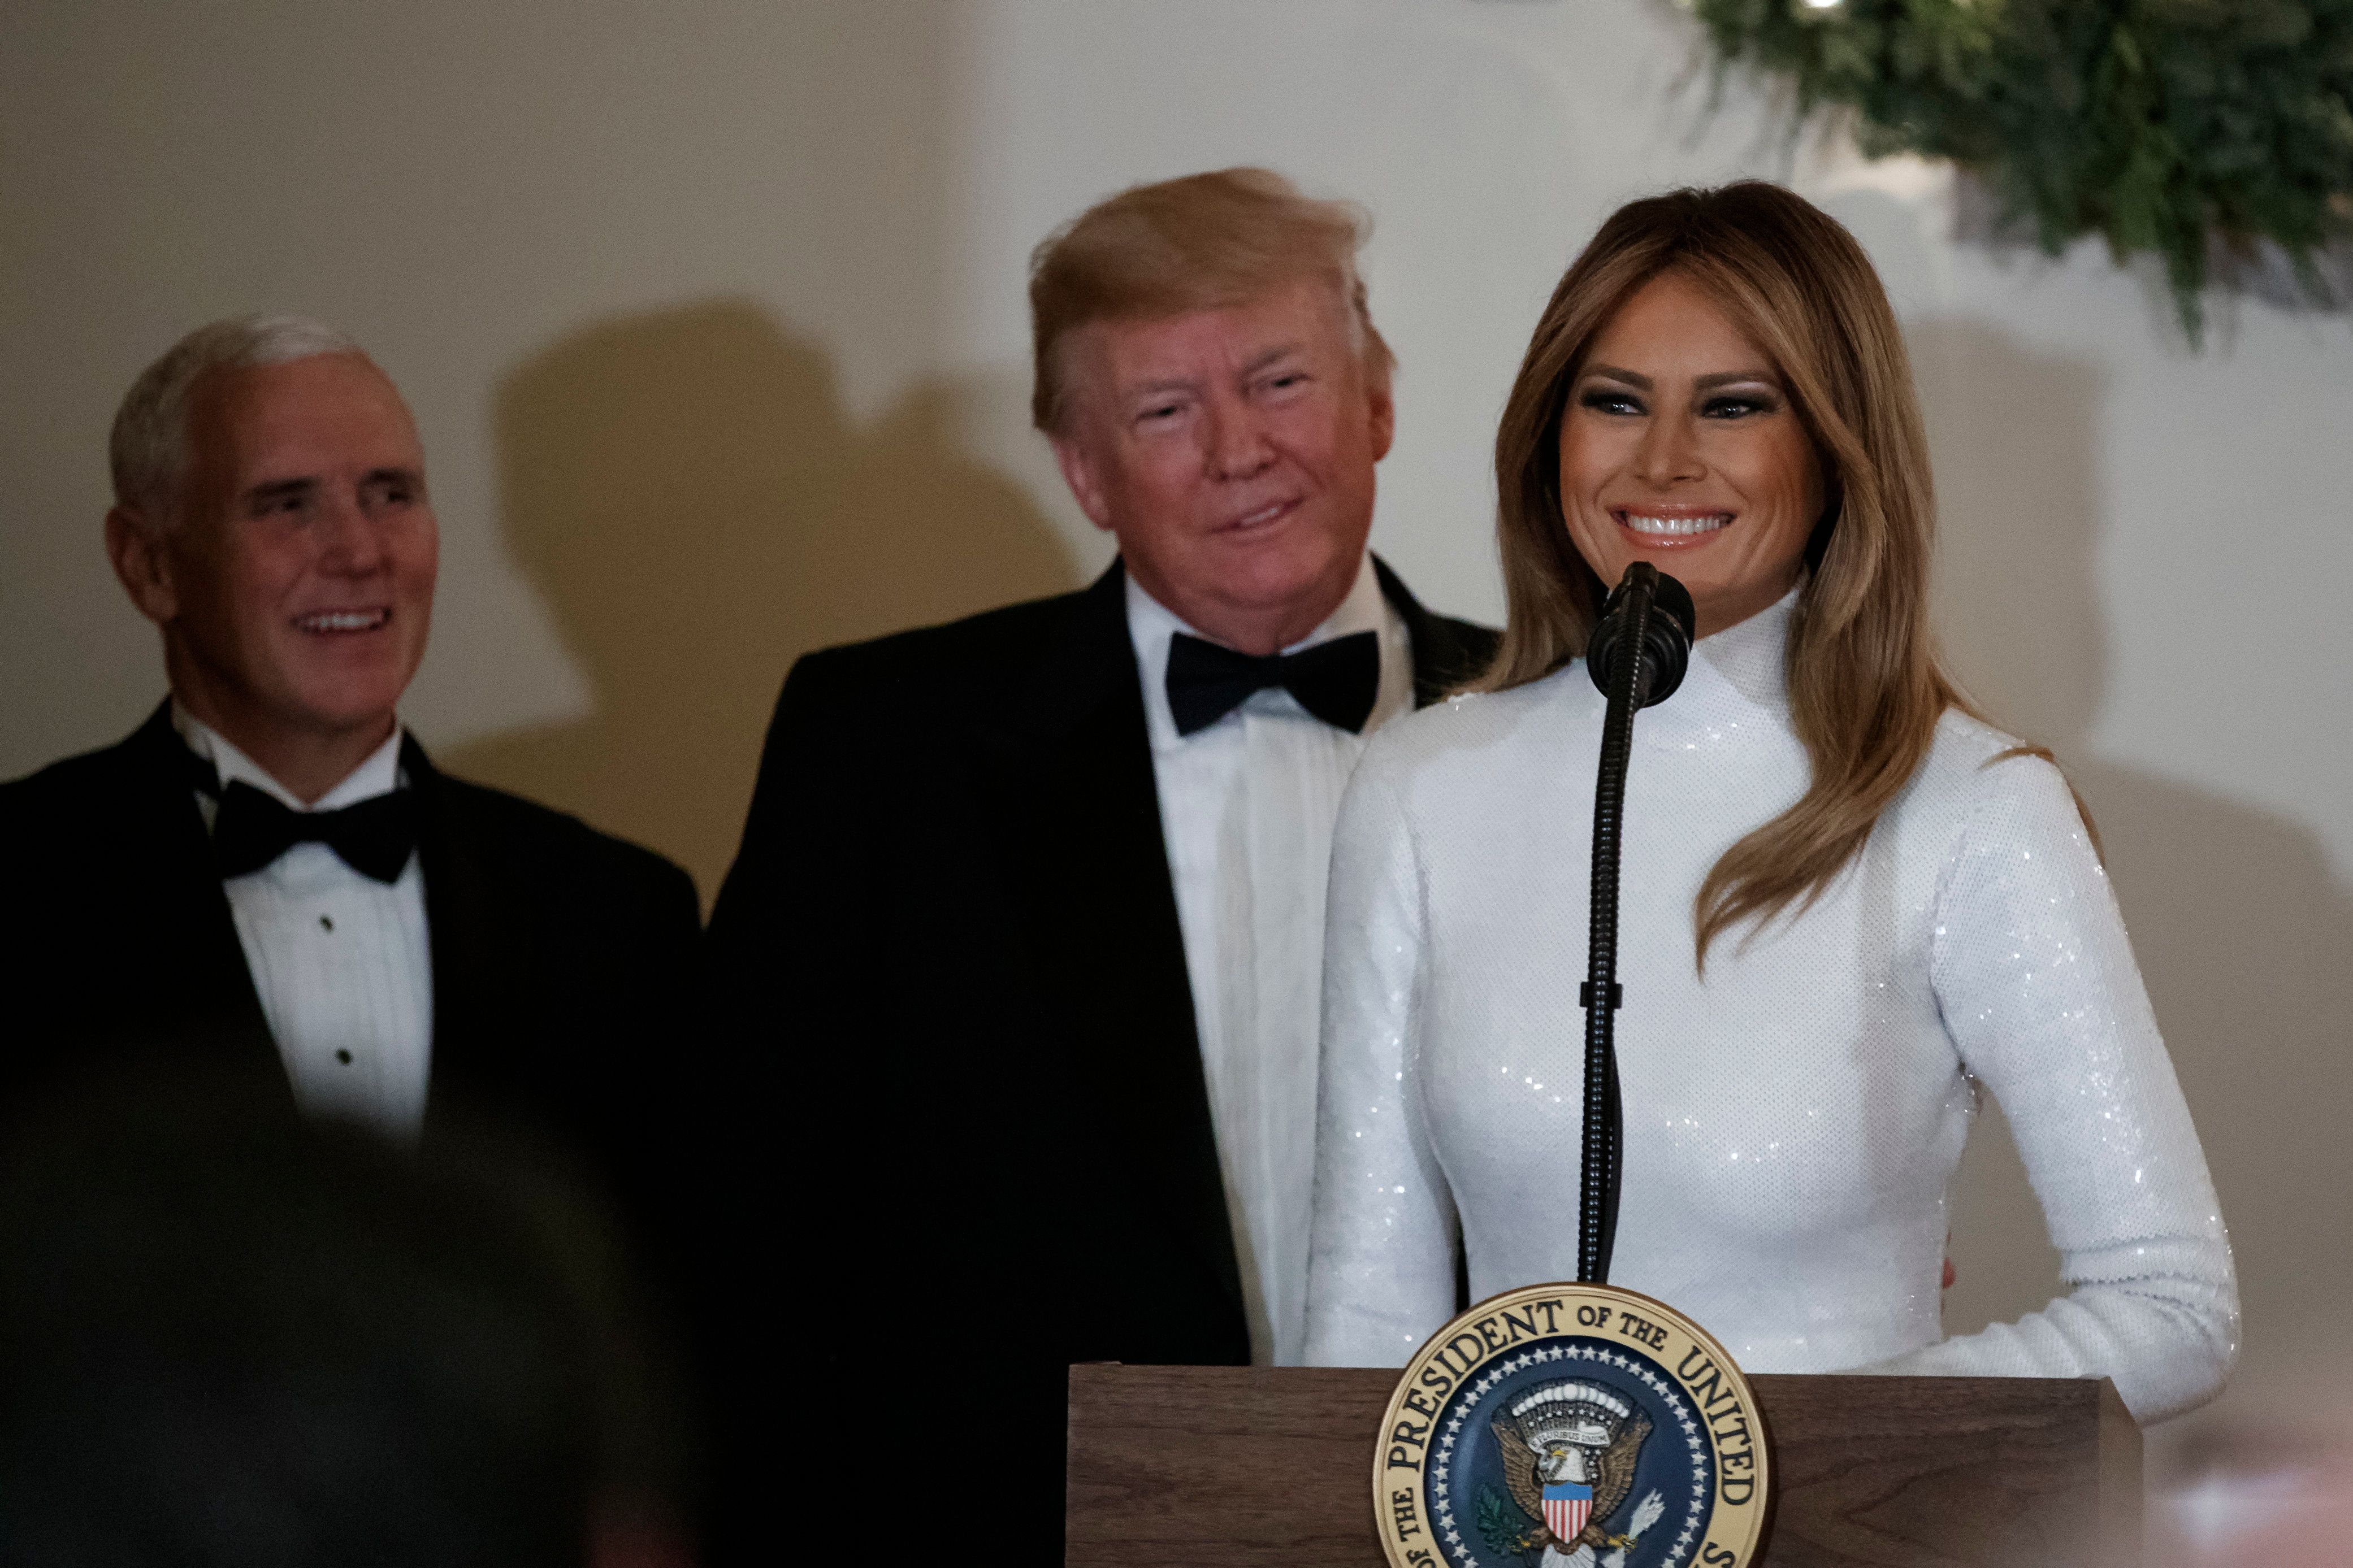 First lady Melania Trump, opined by President Donald Trump, and Vice President Mike Pence pauses as she speaks during the Congressional Ball in the Grand Foyer of the White House in Washington, Saturday, Dec. 15, 2018. (AP Photo/Carolyn Kaster)